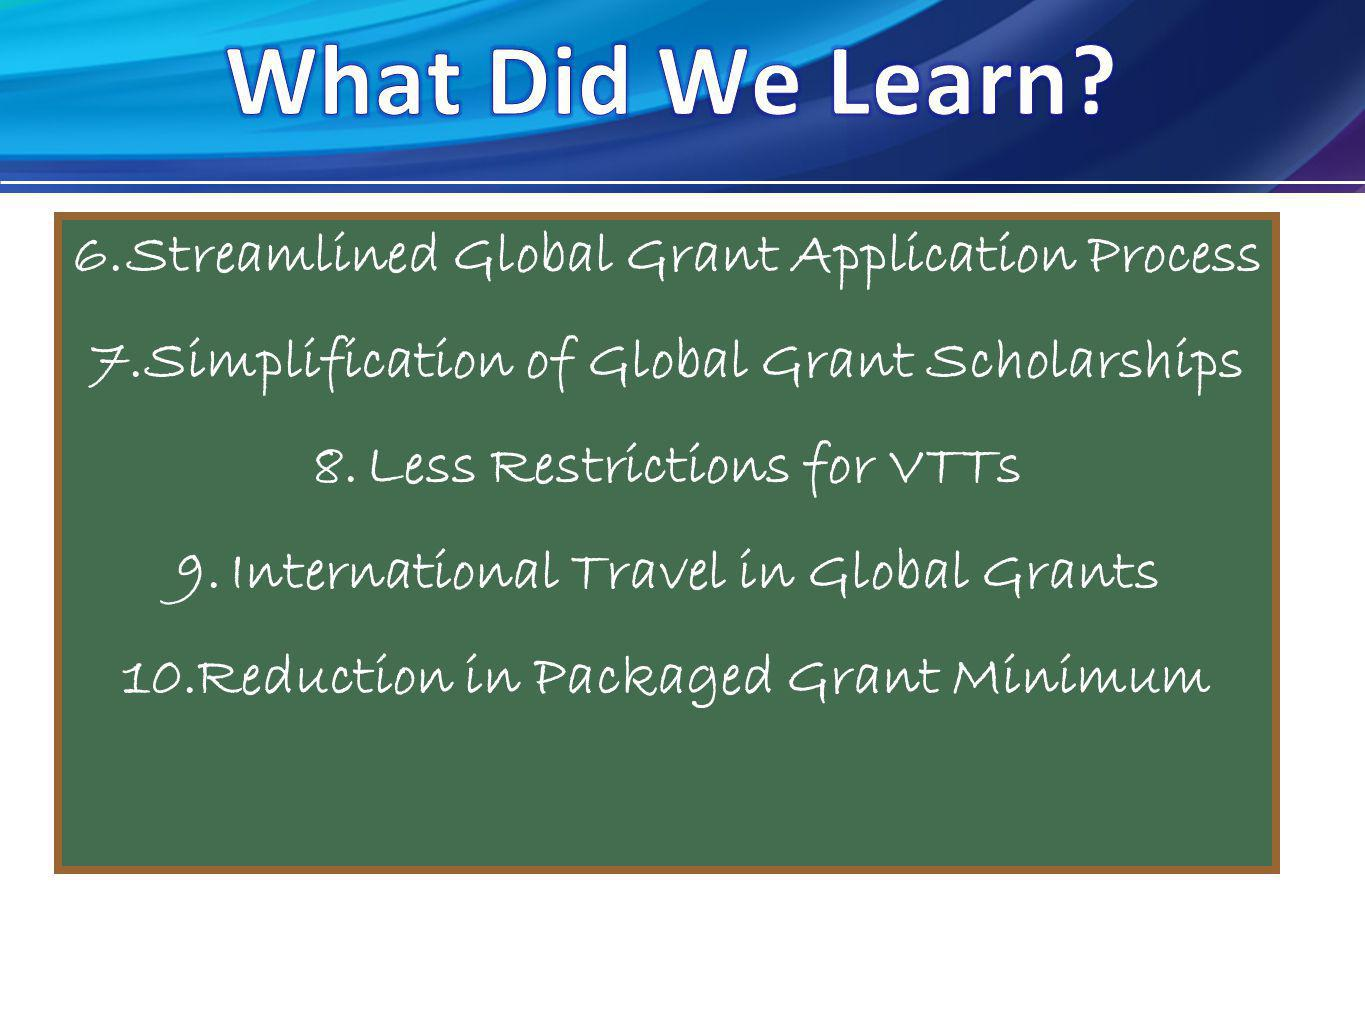 6.Streamlined Global Grant Application Process 7.Simplification of Global Grant Scholarships 8.Less Restrictions for VTTs 9.International Travel in Global Grants 10.Reduction in Packaged Grant Minimum